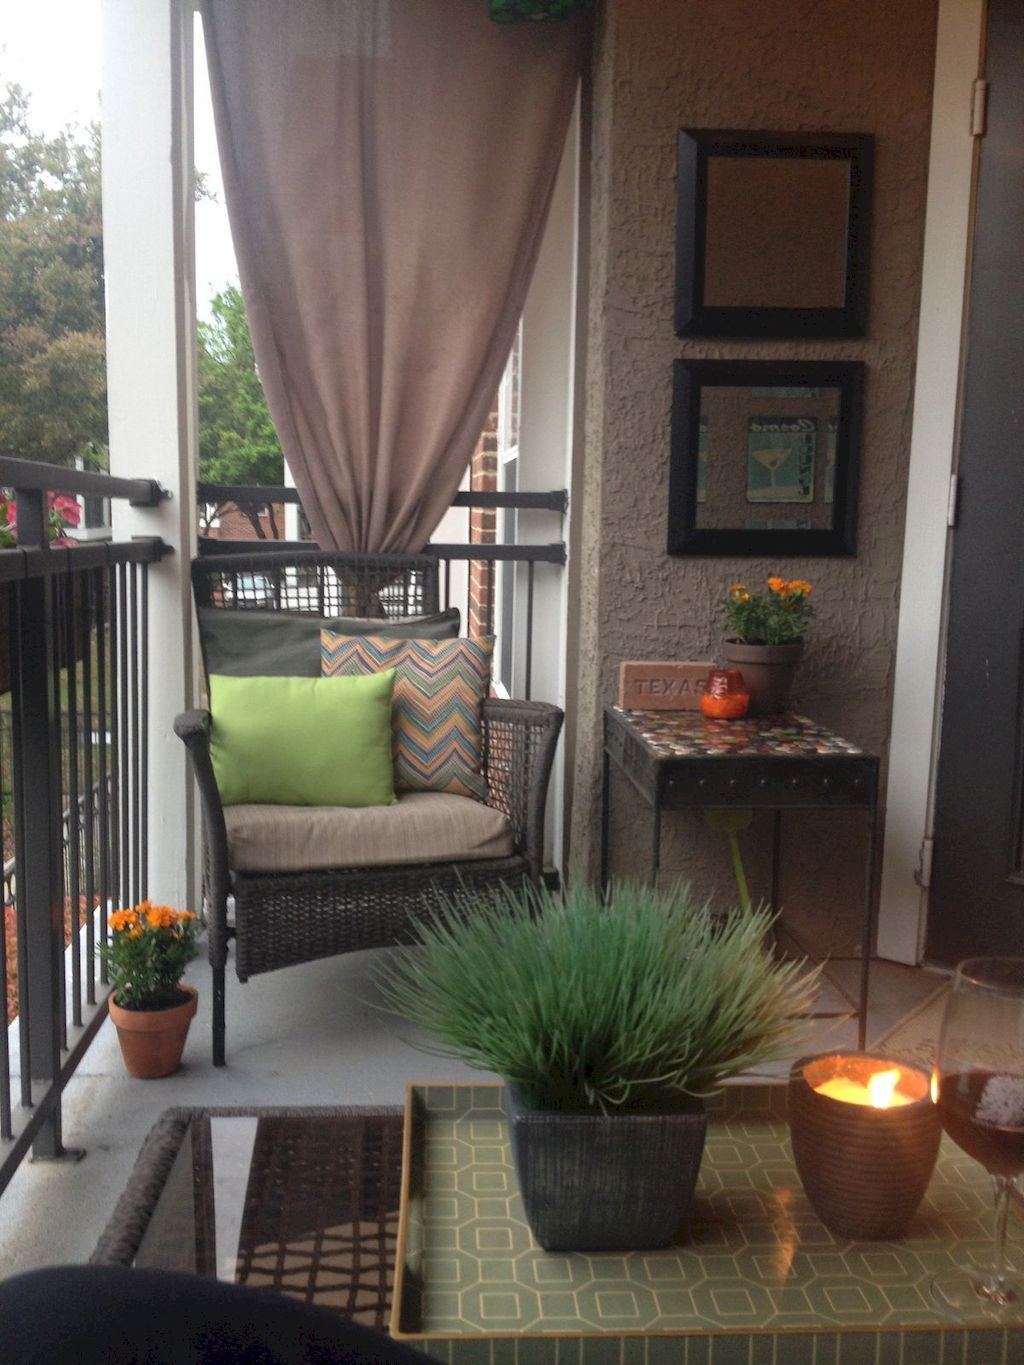 Pin By Alyssa Blackburn On Balcony Ideas Budget Patio Apartment Decorating Balconies